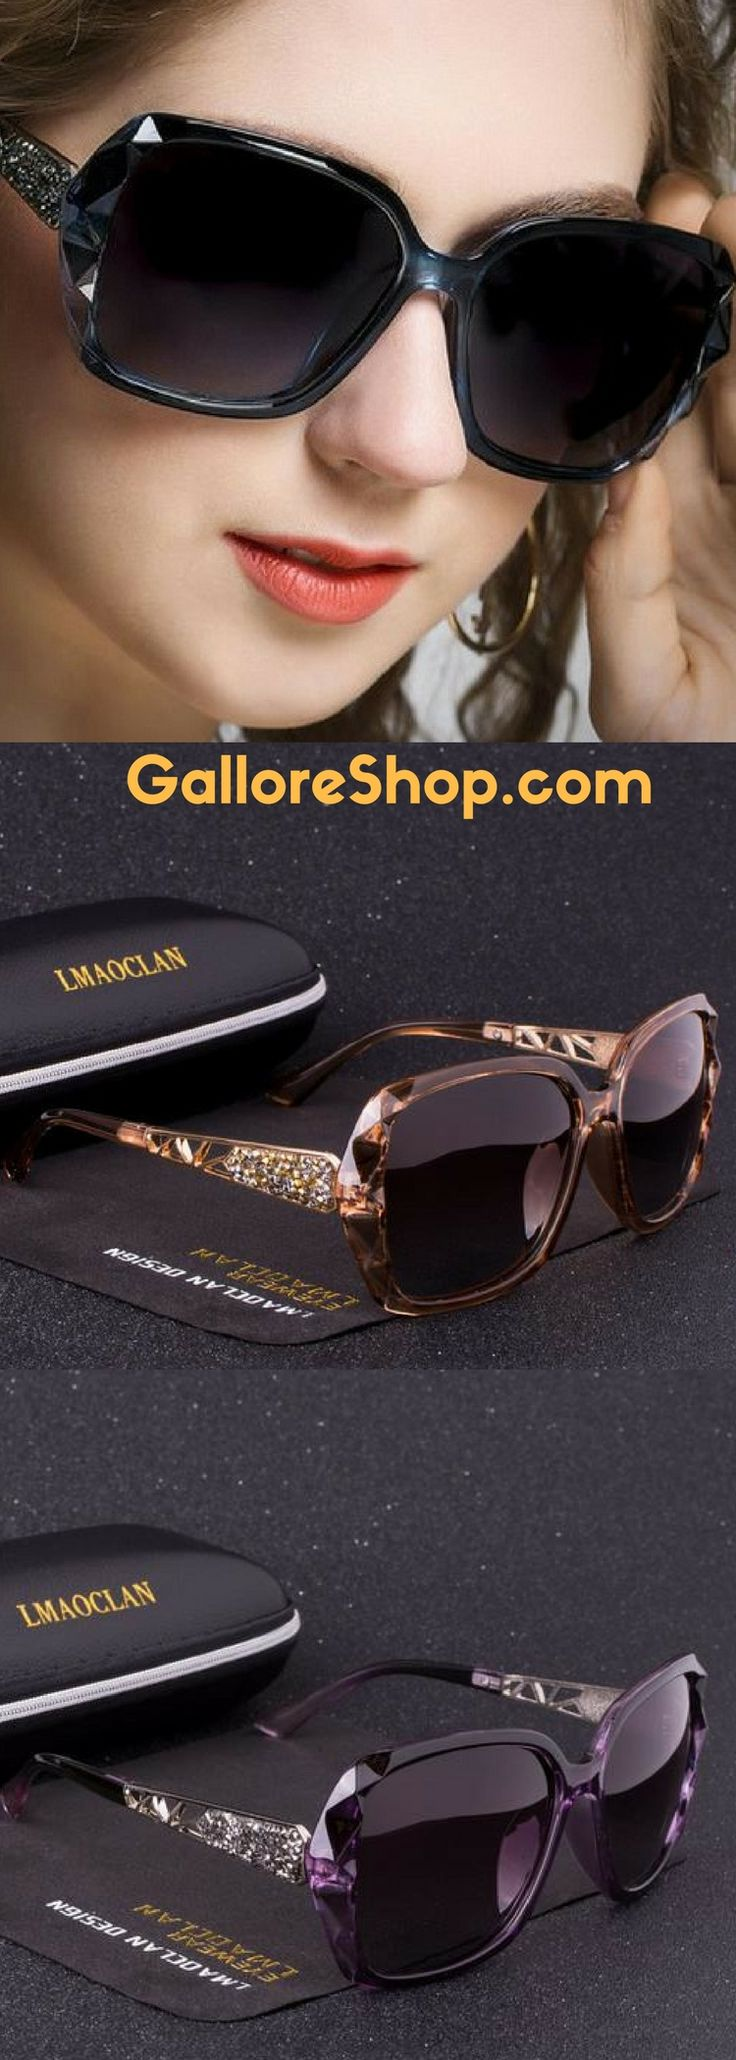 Look trendy while protecting your eyes with these stunning polarized sunglasses for women trending sunglasses top trending sunglasses trending women sunglasses trending sunglasses women trendy sunglasses trend sunglasses trending glasses latest trend sunglasses latest sunglasses trend #trendy #trending #sunglasses #eyewear #womenswear #womens #new